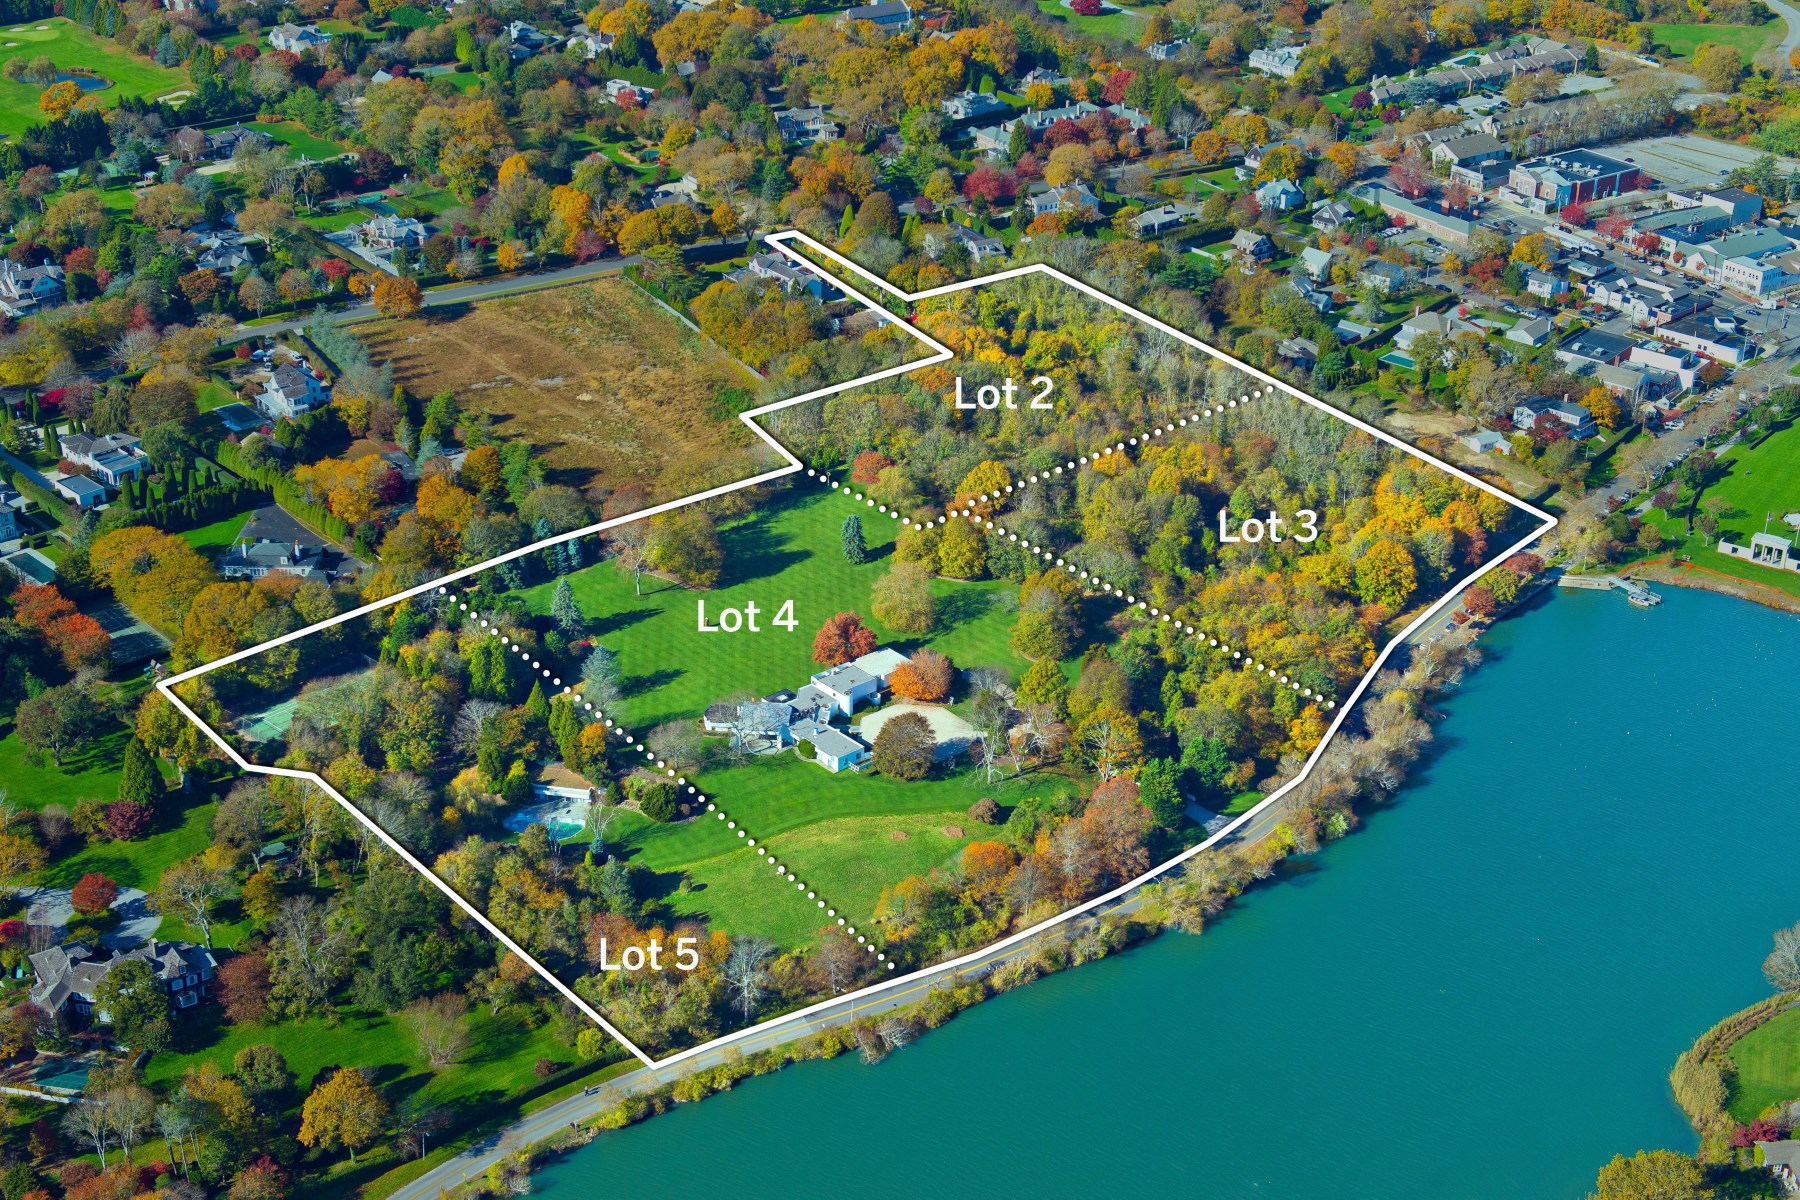 Single Family Home for Active at Spectacular Waterviews on Lake Agawam 137,153 Pond Lane, Lot 4 & 5 Southampton, New York 11968 United States